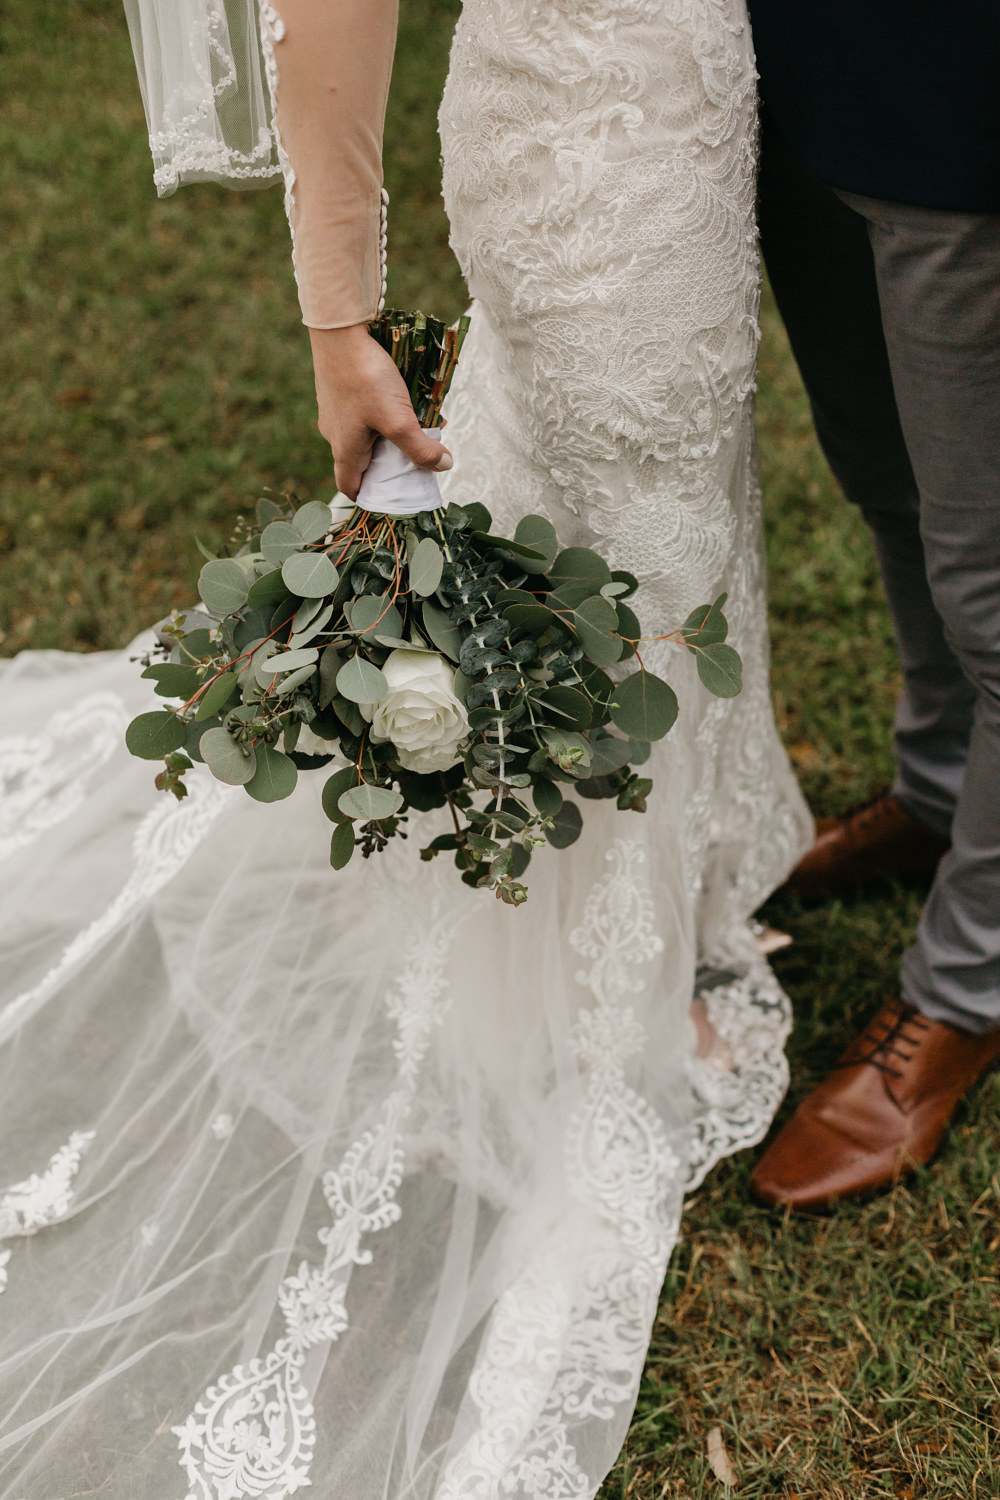 HaileyDylan_Austin Elopement Photographer Austin Wedding Photographer-91.jpg